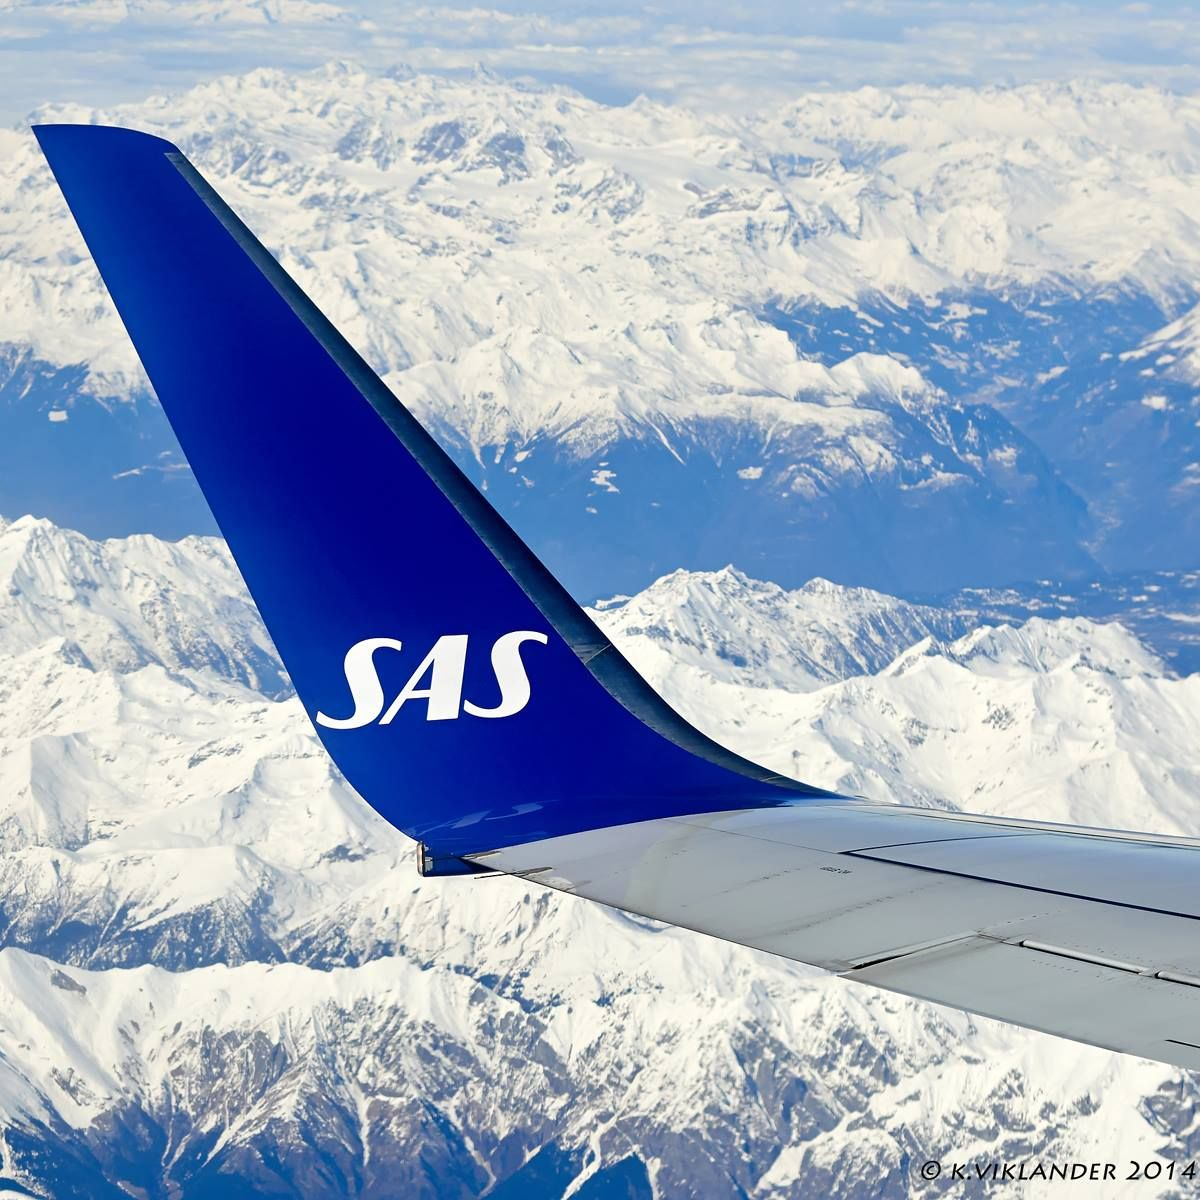 Sometimes Blue And White Is All You Need Scandinavian Airlines System Sas Airlines Air Travel Tips